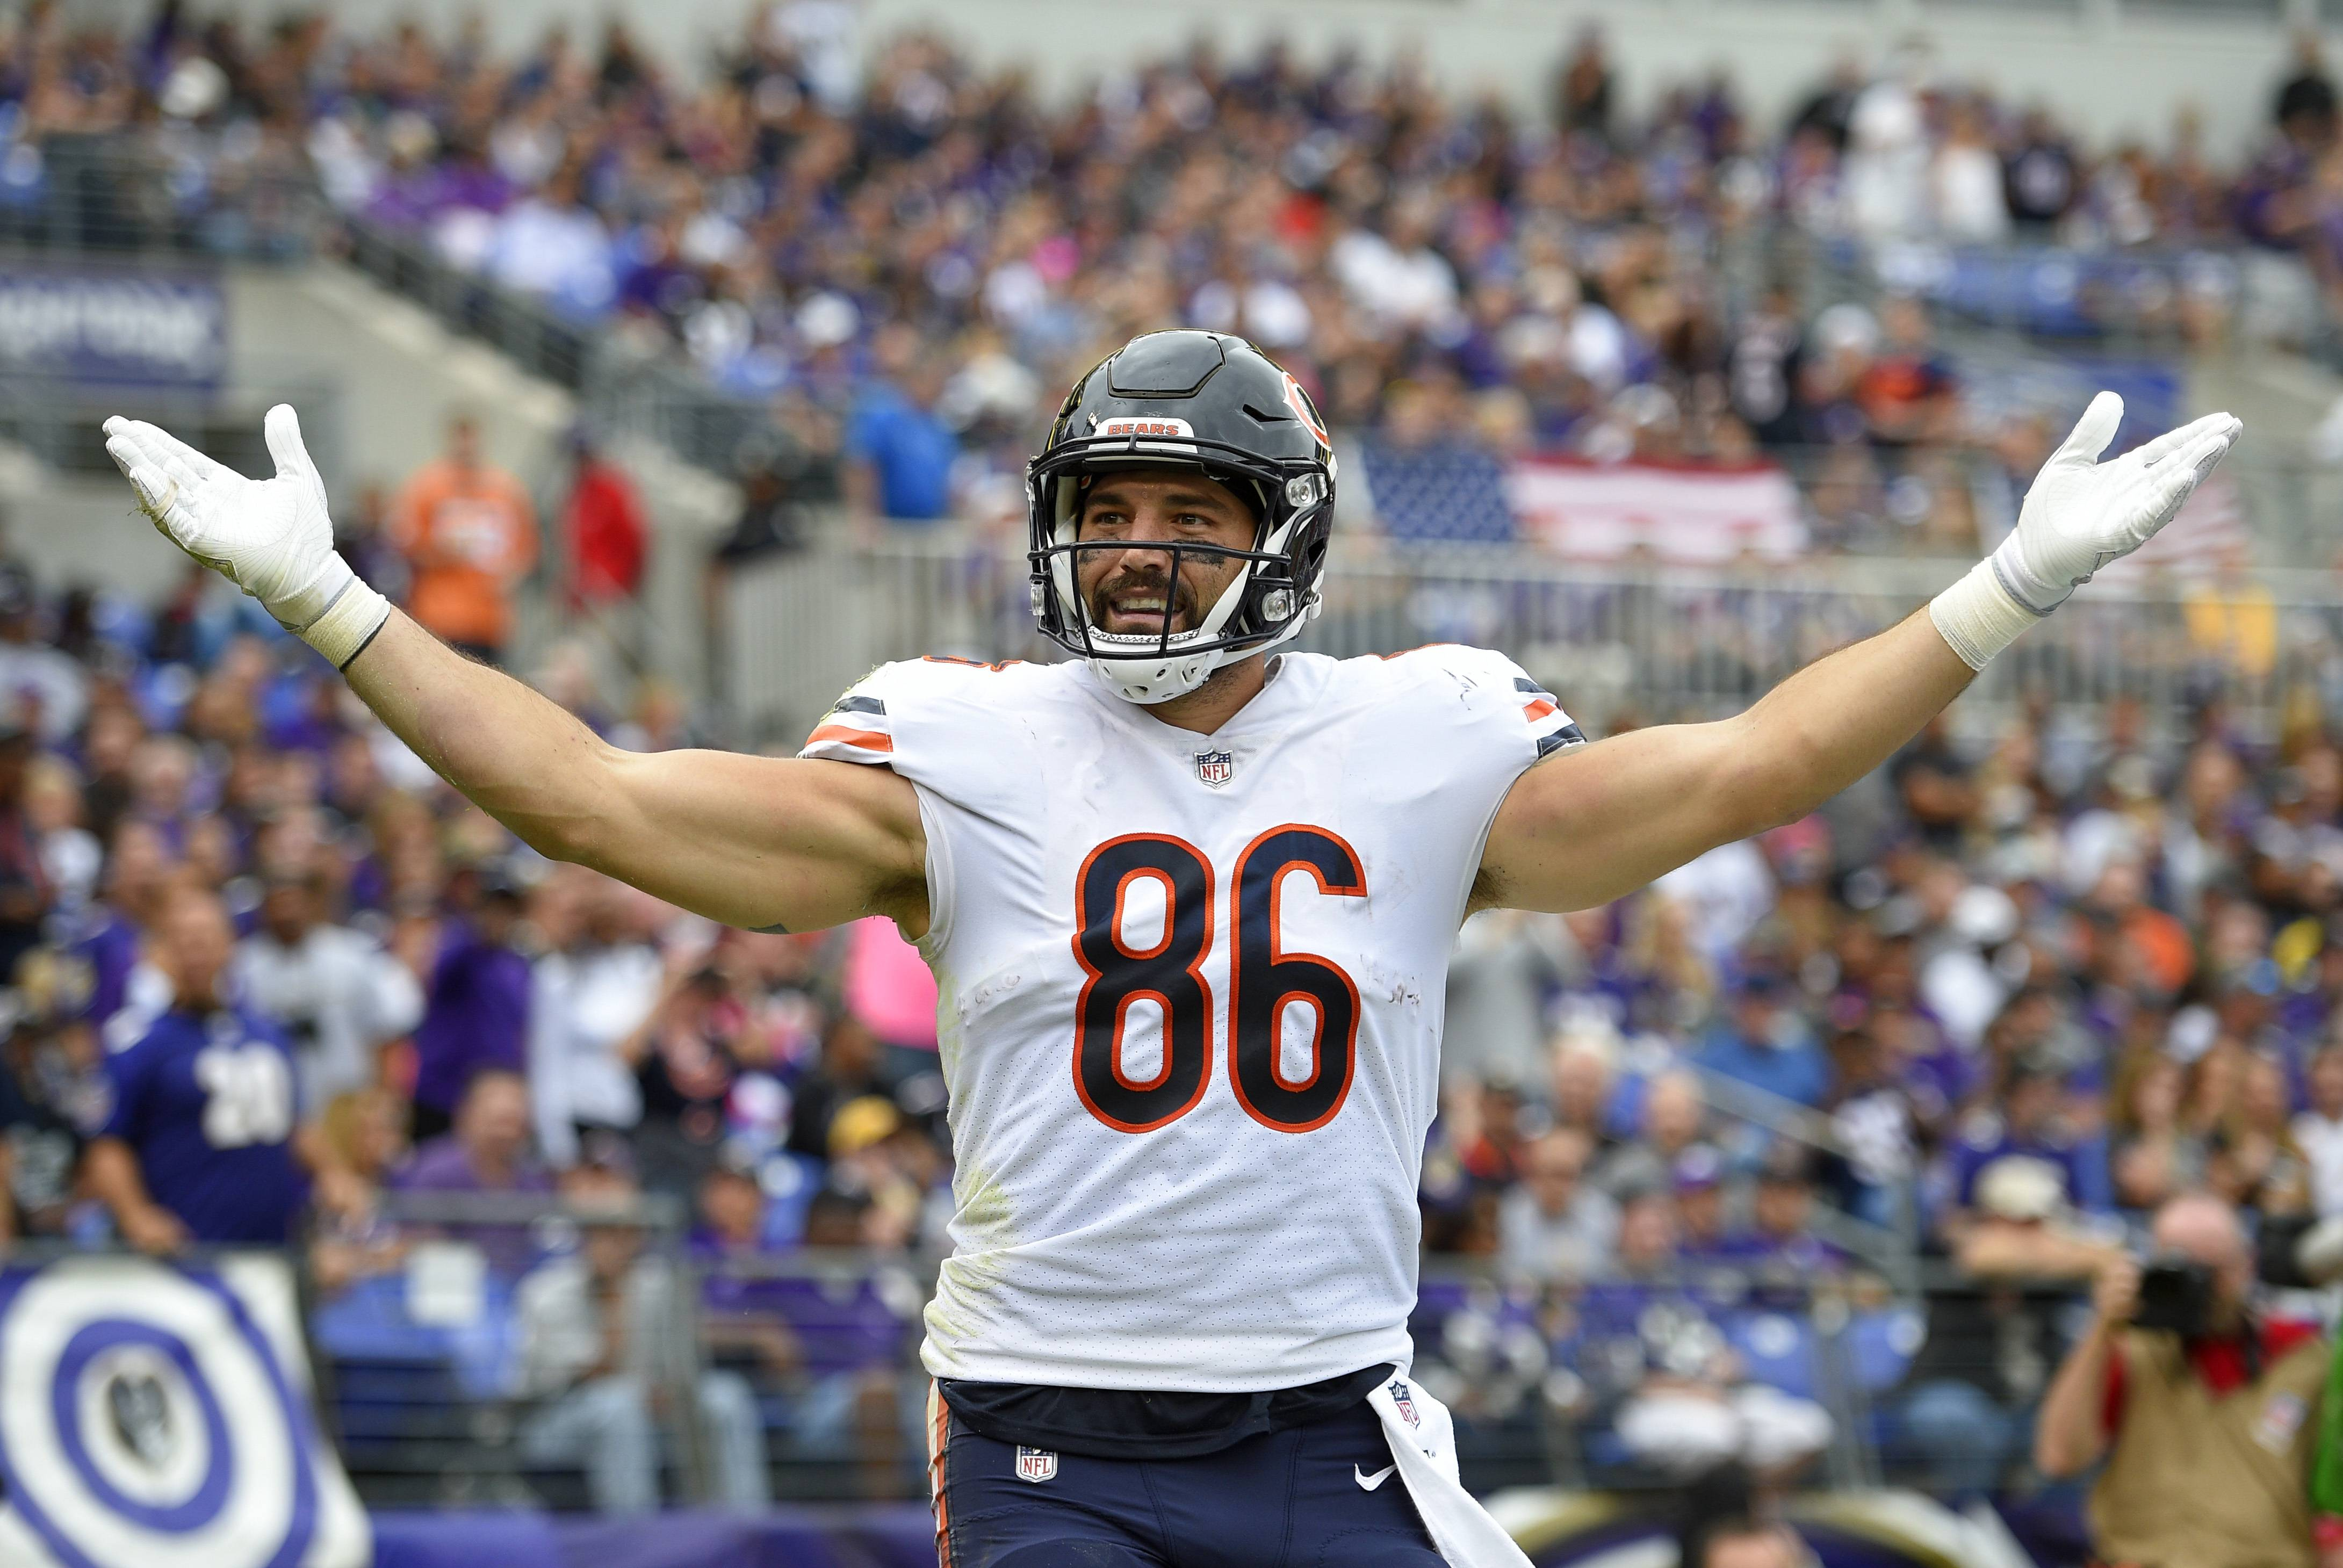 Chicago Bears tight end Zach Miller celebrates after scoring a touchdown in the first half of an NFL football game against the Baltimore Ravens, Sunday, Oct. 15, 2017, in Baltimore.